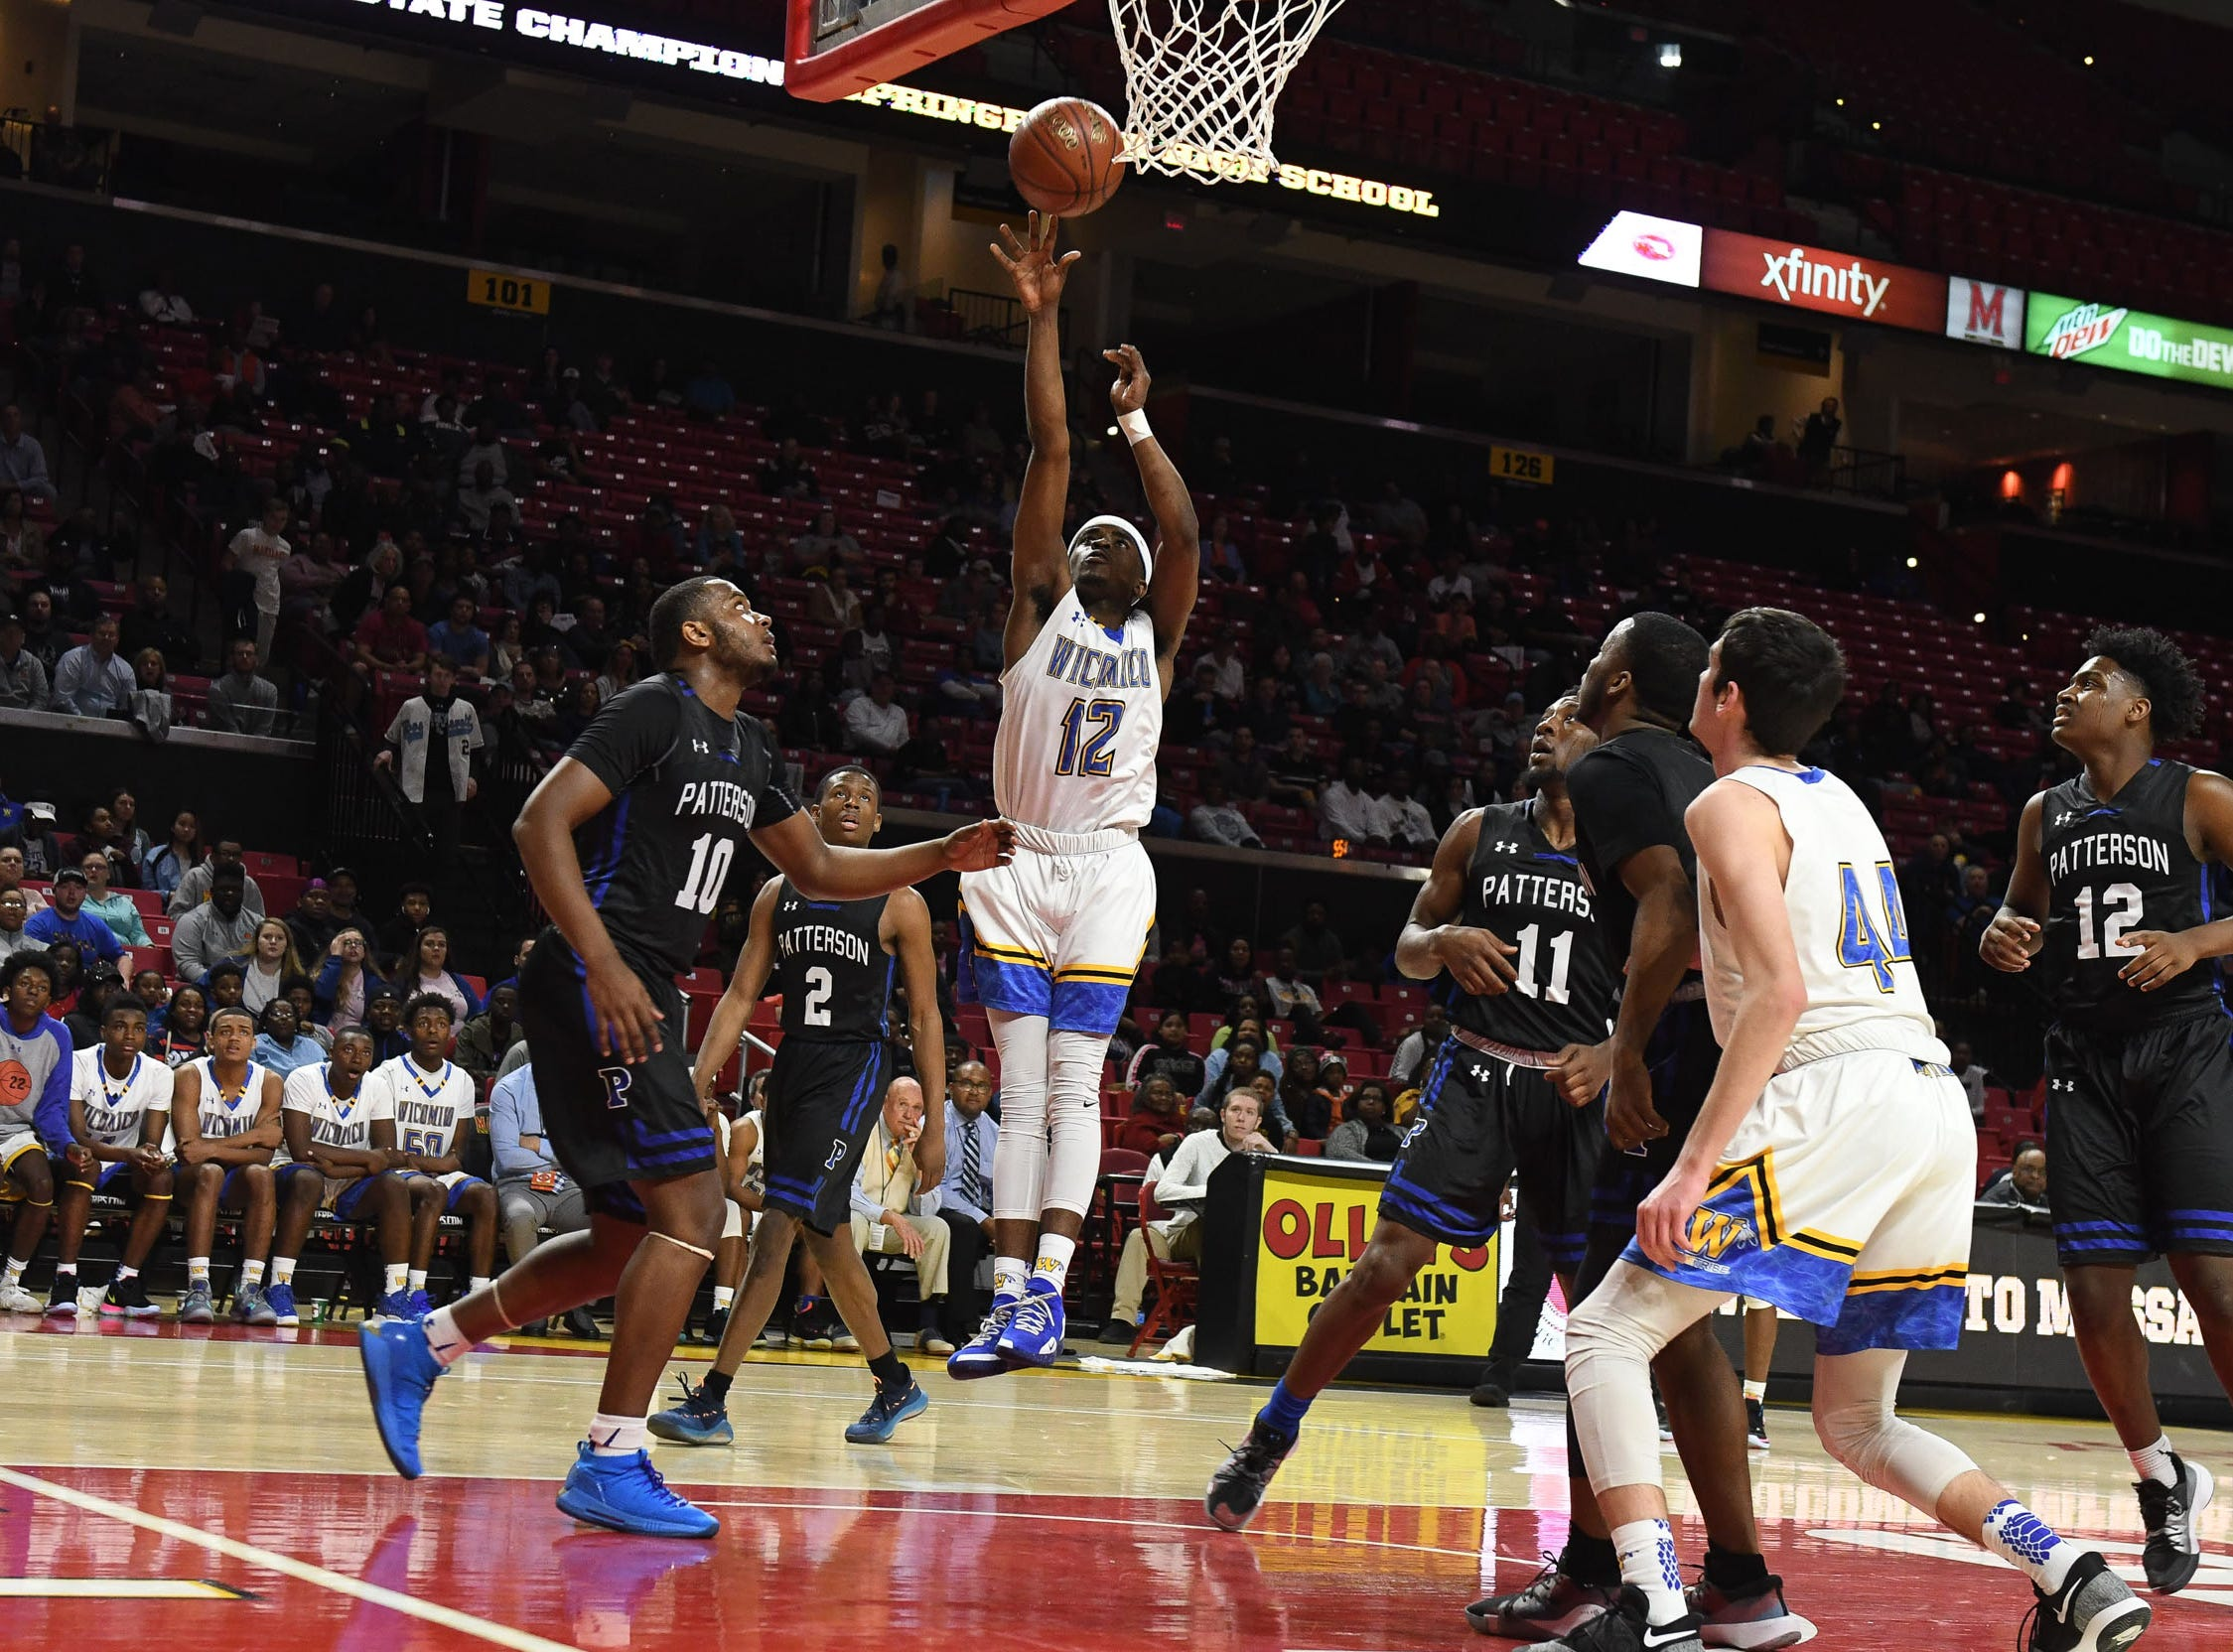 Wi-Hi's Keyshawn Marshall with the shot against Patterson High School during the MPSSA 2A boys state championship on Saturday, March 16, 2019 at The Xfinity Center in College Park, Md.